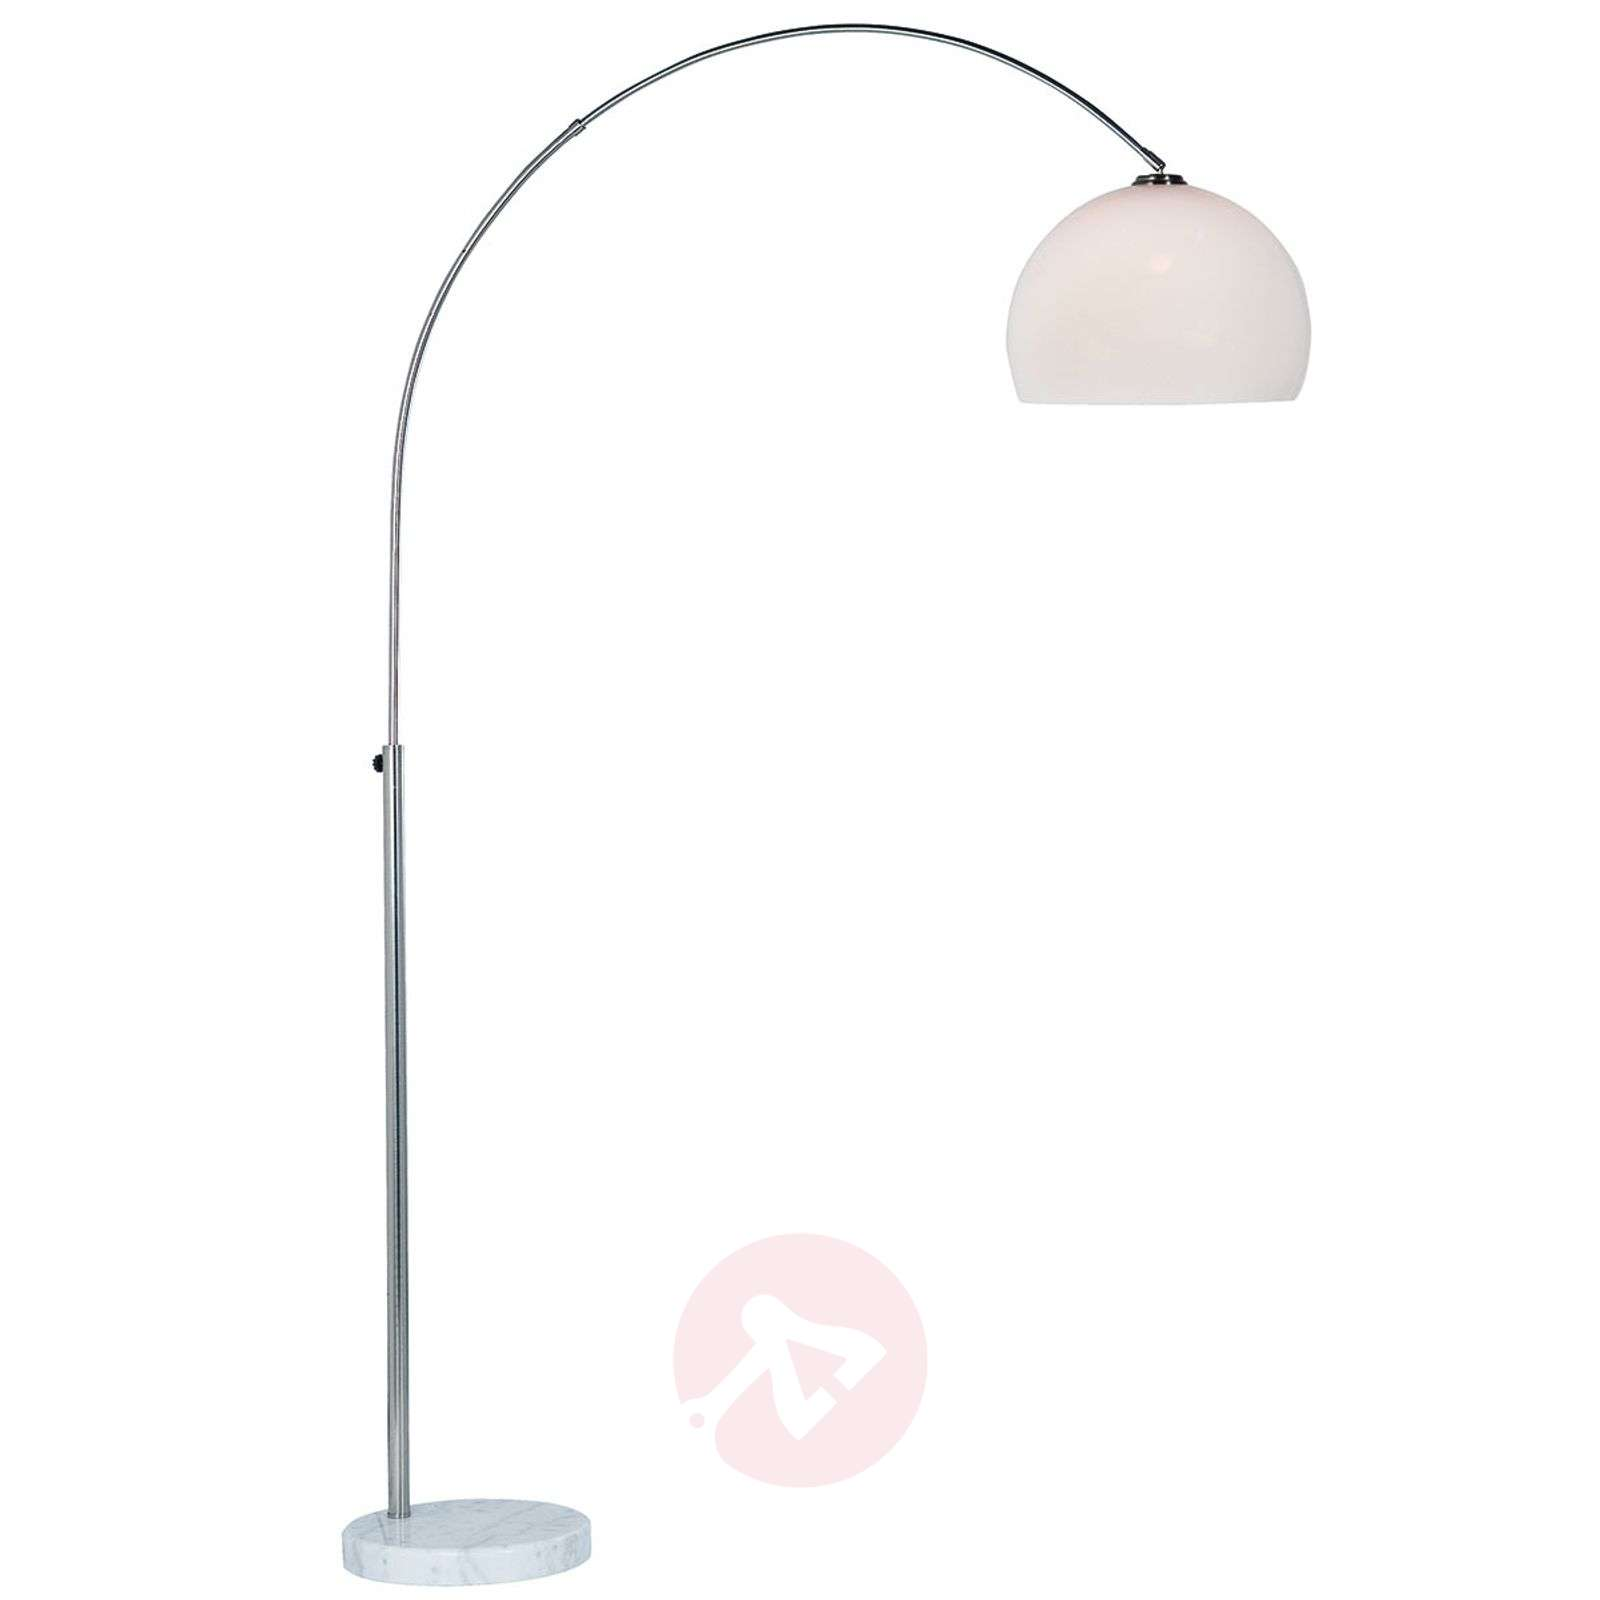 ARIAN flexible floor lamp-7007180-01